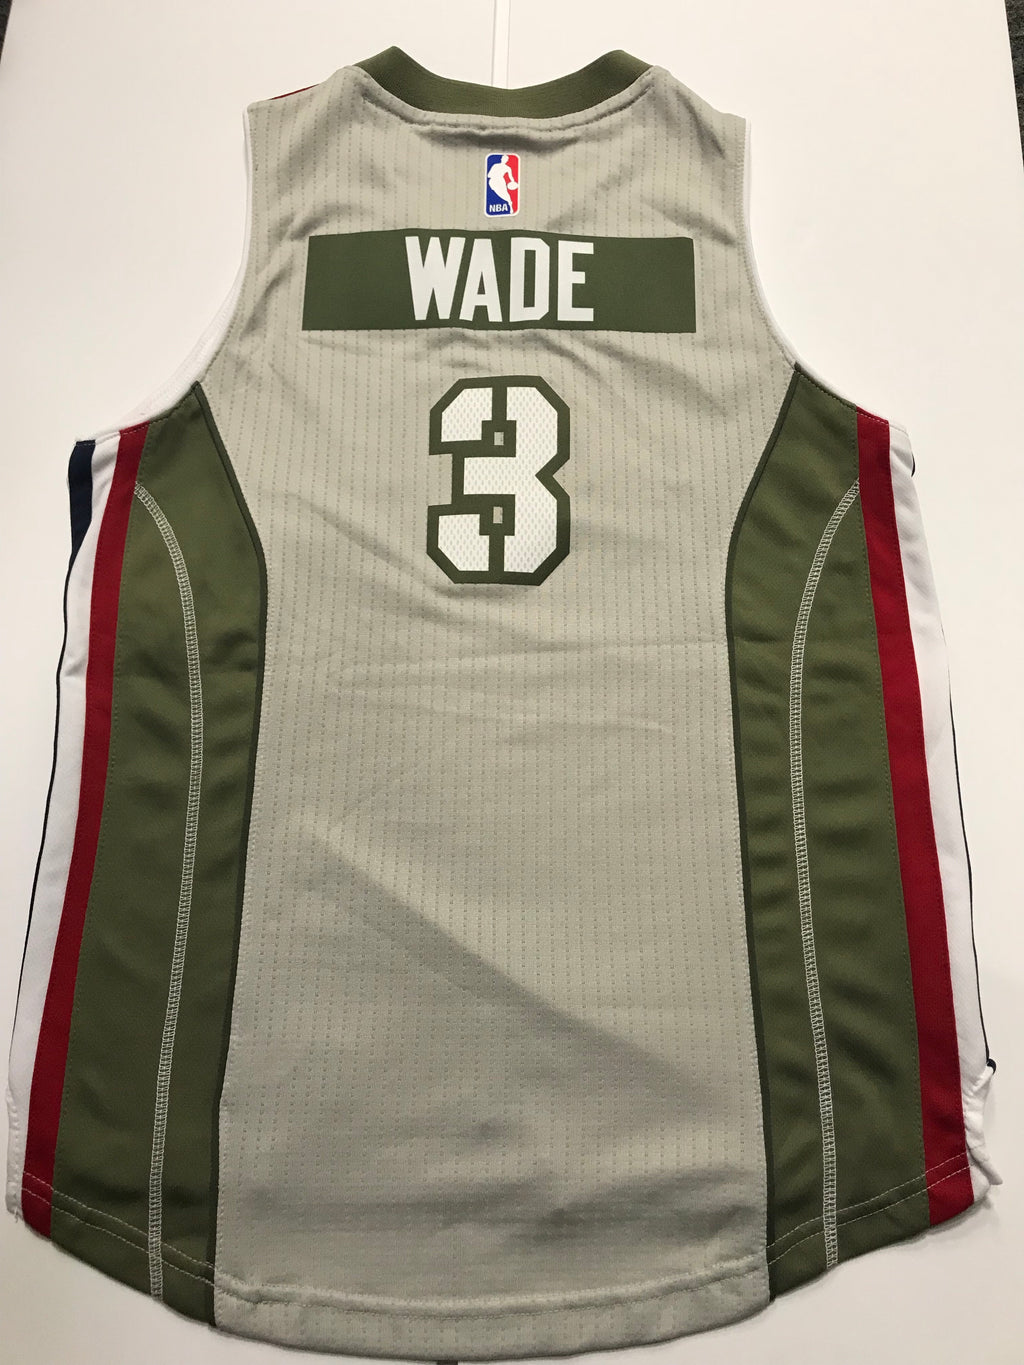 341b6700eaac Miami Heat Home Strong Wade Jersey - Youth